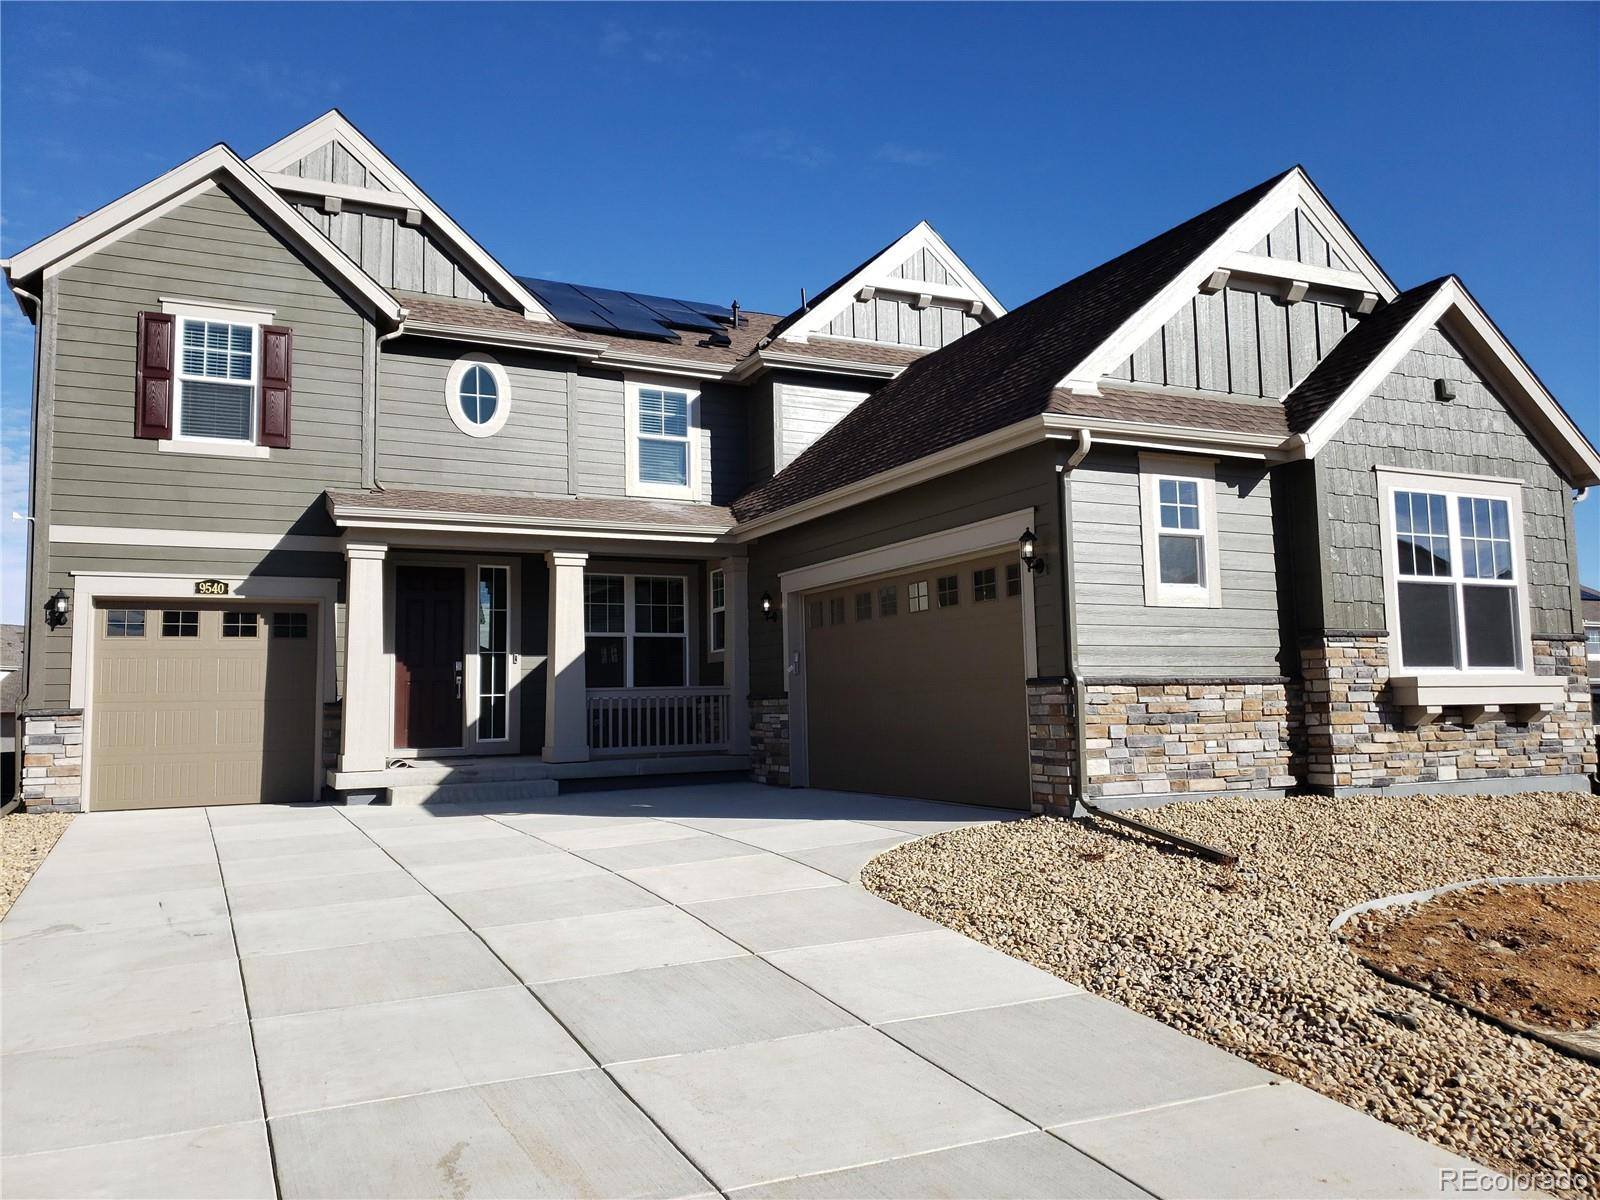 Available January 2020. Corner homesite, south/west facing! This stunning Prescott 2-story features the ever coveted mountain views of the Boulder Flat Irons & Stanley Lake. Spacious with 5 Beds, 4.5 Baths, Dining Room, gorgeous kitchen & great room plus 2nd floor bonus space, 3 car split garage & unfinished basement. Beautiful cool tones with White cabinets, rich hardwood floors throughout the main level & Quartz countertops gives this home a modern & fresh interior. Main level guest suite, study & dining room makes this home, the perfect home in the ever popular Candelas Community. The location of this home is just 1 block from the connected bike & walking paths, 2 long blocks from the K-8 community school & walking/biking distance to the pool & fitness center. This is a must see home, as it is priced to sell quickly. Each home has been thoughtfully designed to bring luxury & the latest technology & trends for comfortable elegance. Energy Star 3.0 certified & HERS rating TBD.